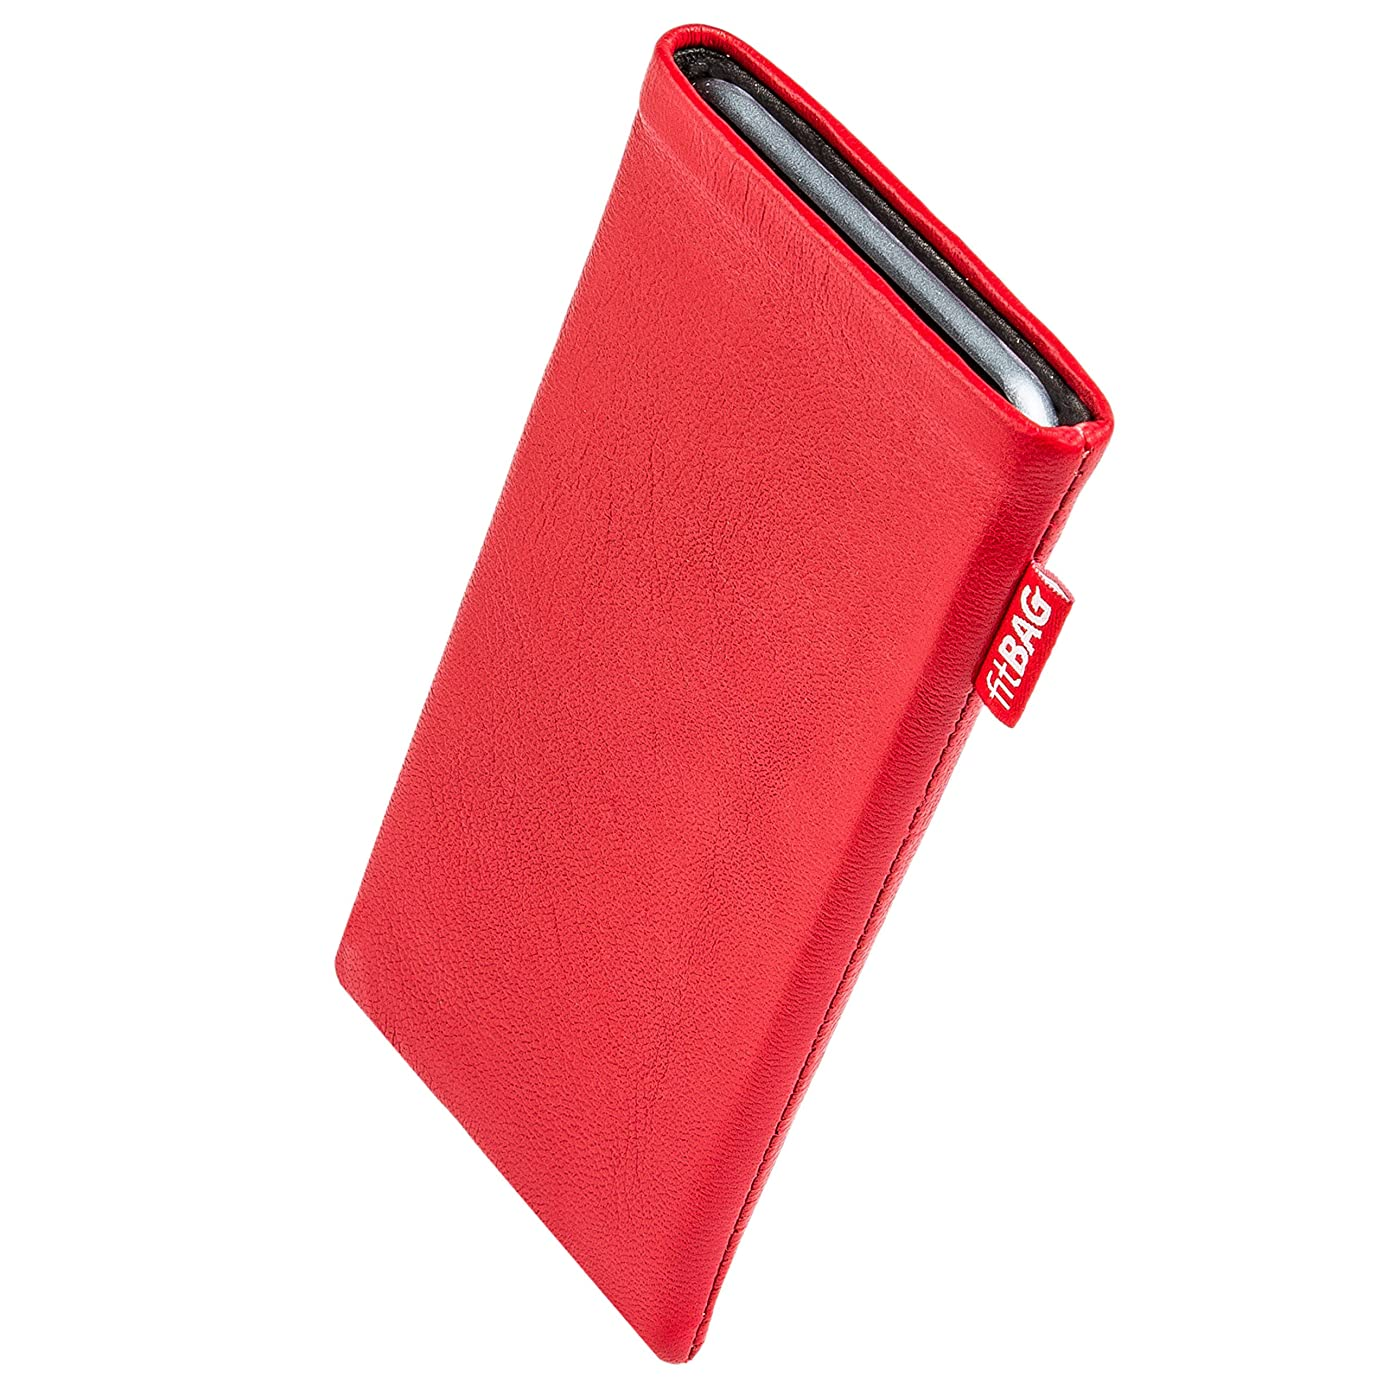 fitBAG Beat Red Custom Tailored Sleeve for Samsung Galaxy Note 8 SM-N950F. Fine Nappa Leather Pouch with Integrated Microfibre Lining for Display Cleaning